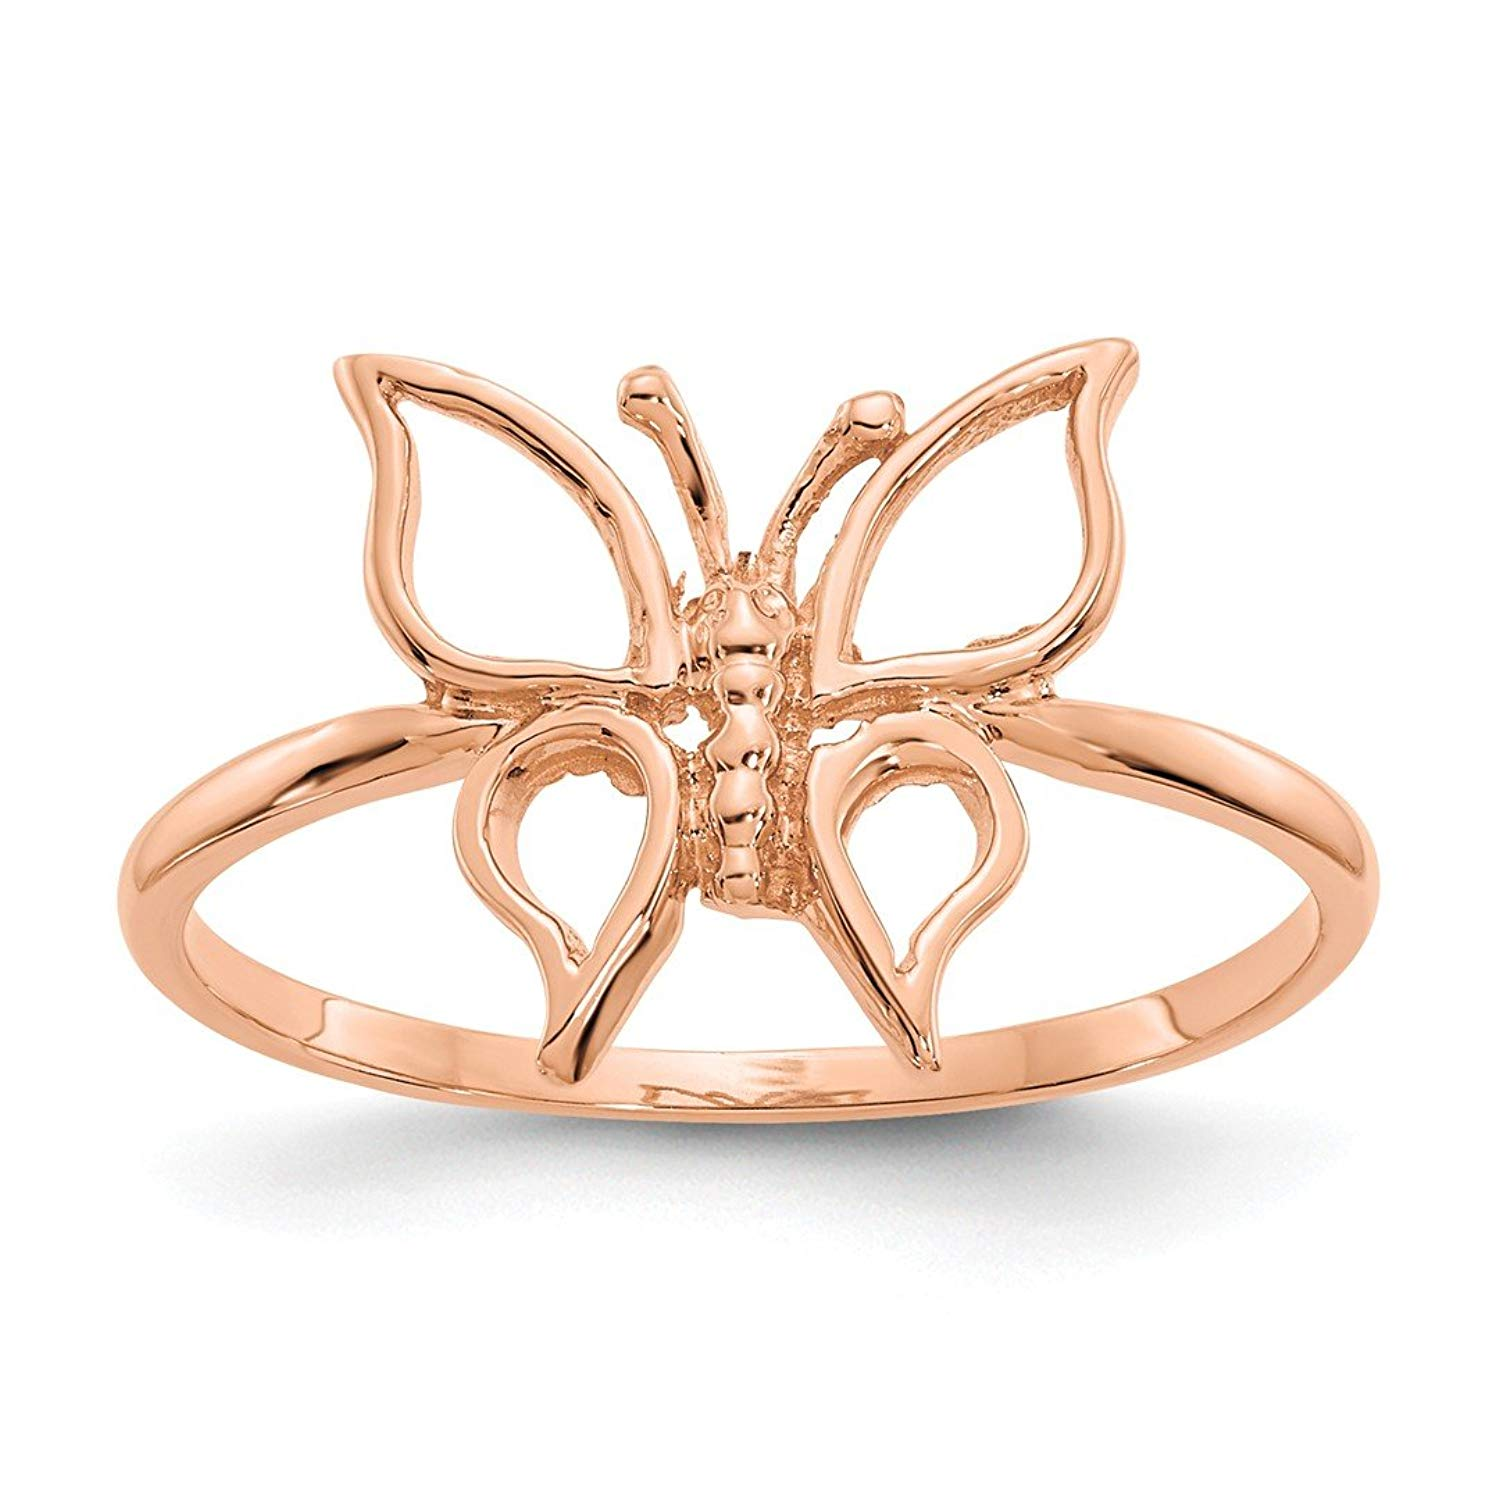 ICE CARATS 14kt Rose Gold Butterfly Band Ring Fine Jewelry Ideal Gifts For Women Gift Set From Heart